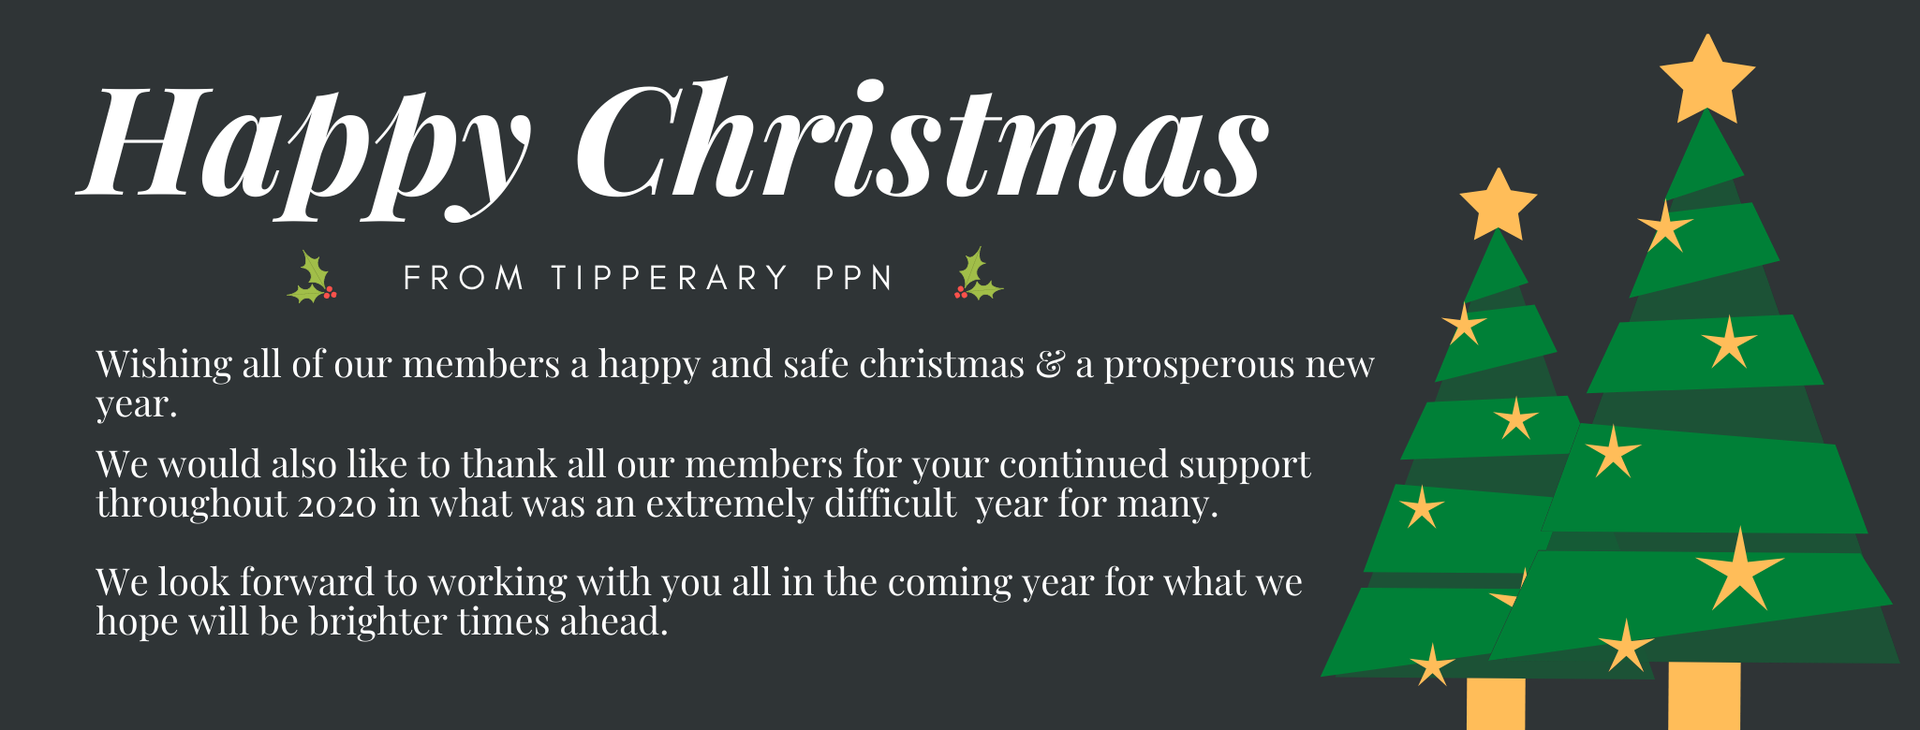 Happy Christmas from Tippperary PPN Wishing all our members a Merry Christmas a prosperous new year